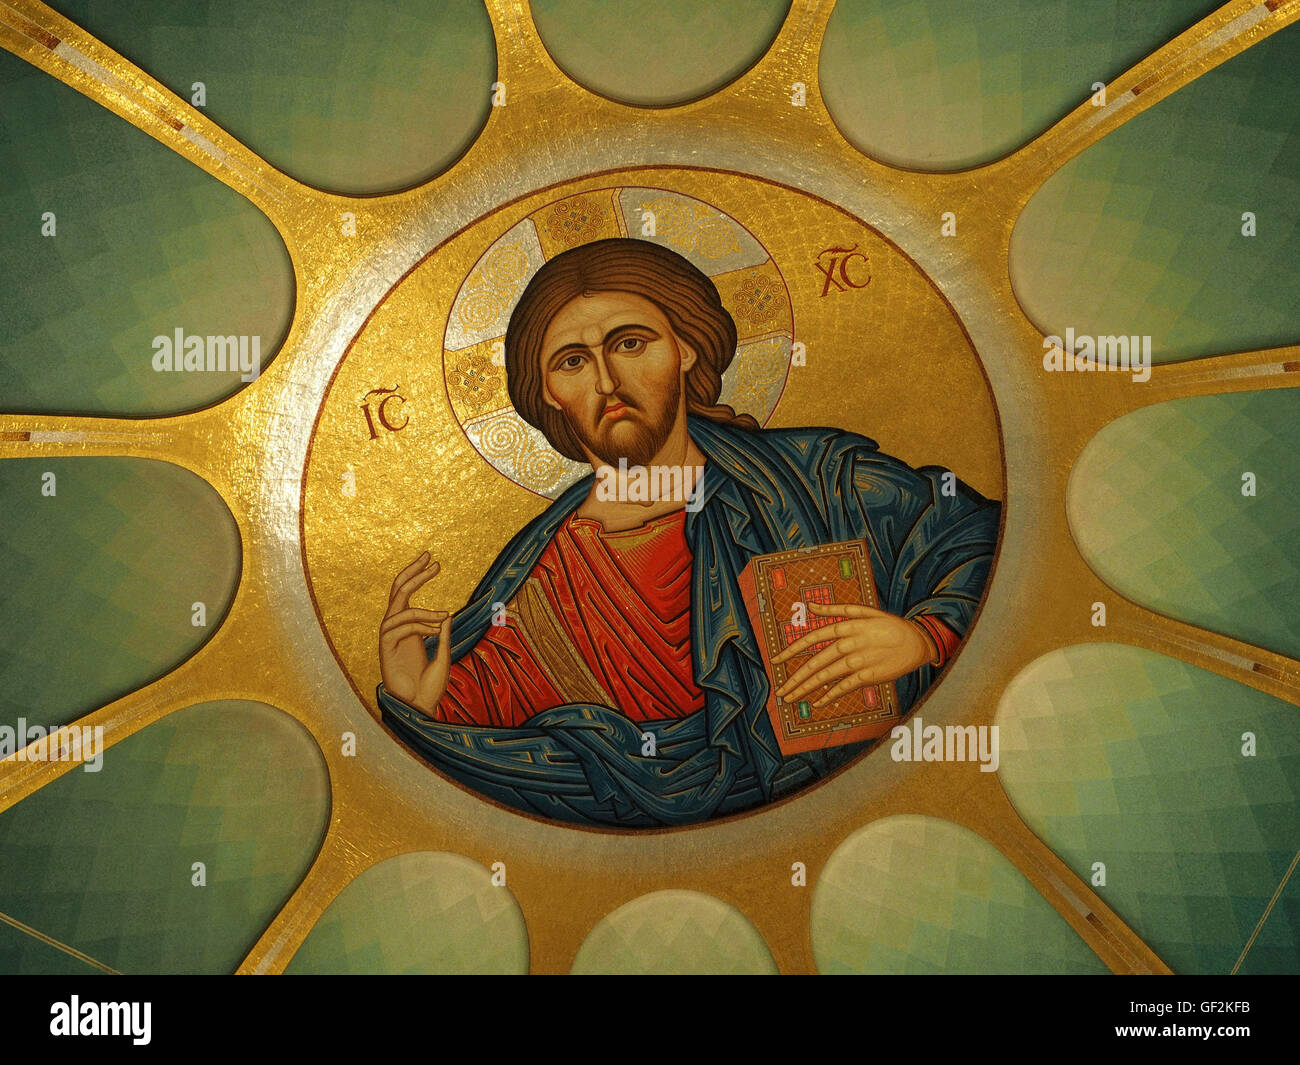 fabulous rich iconic imagery of Christ within dome of Orthodox church in the Albanian capital Tirana in the Balkans - Stock Image